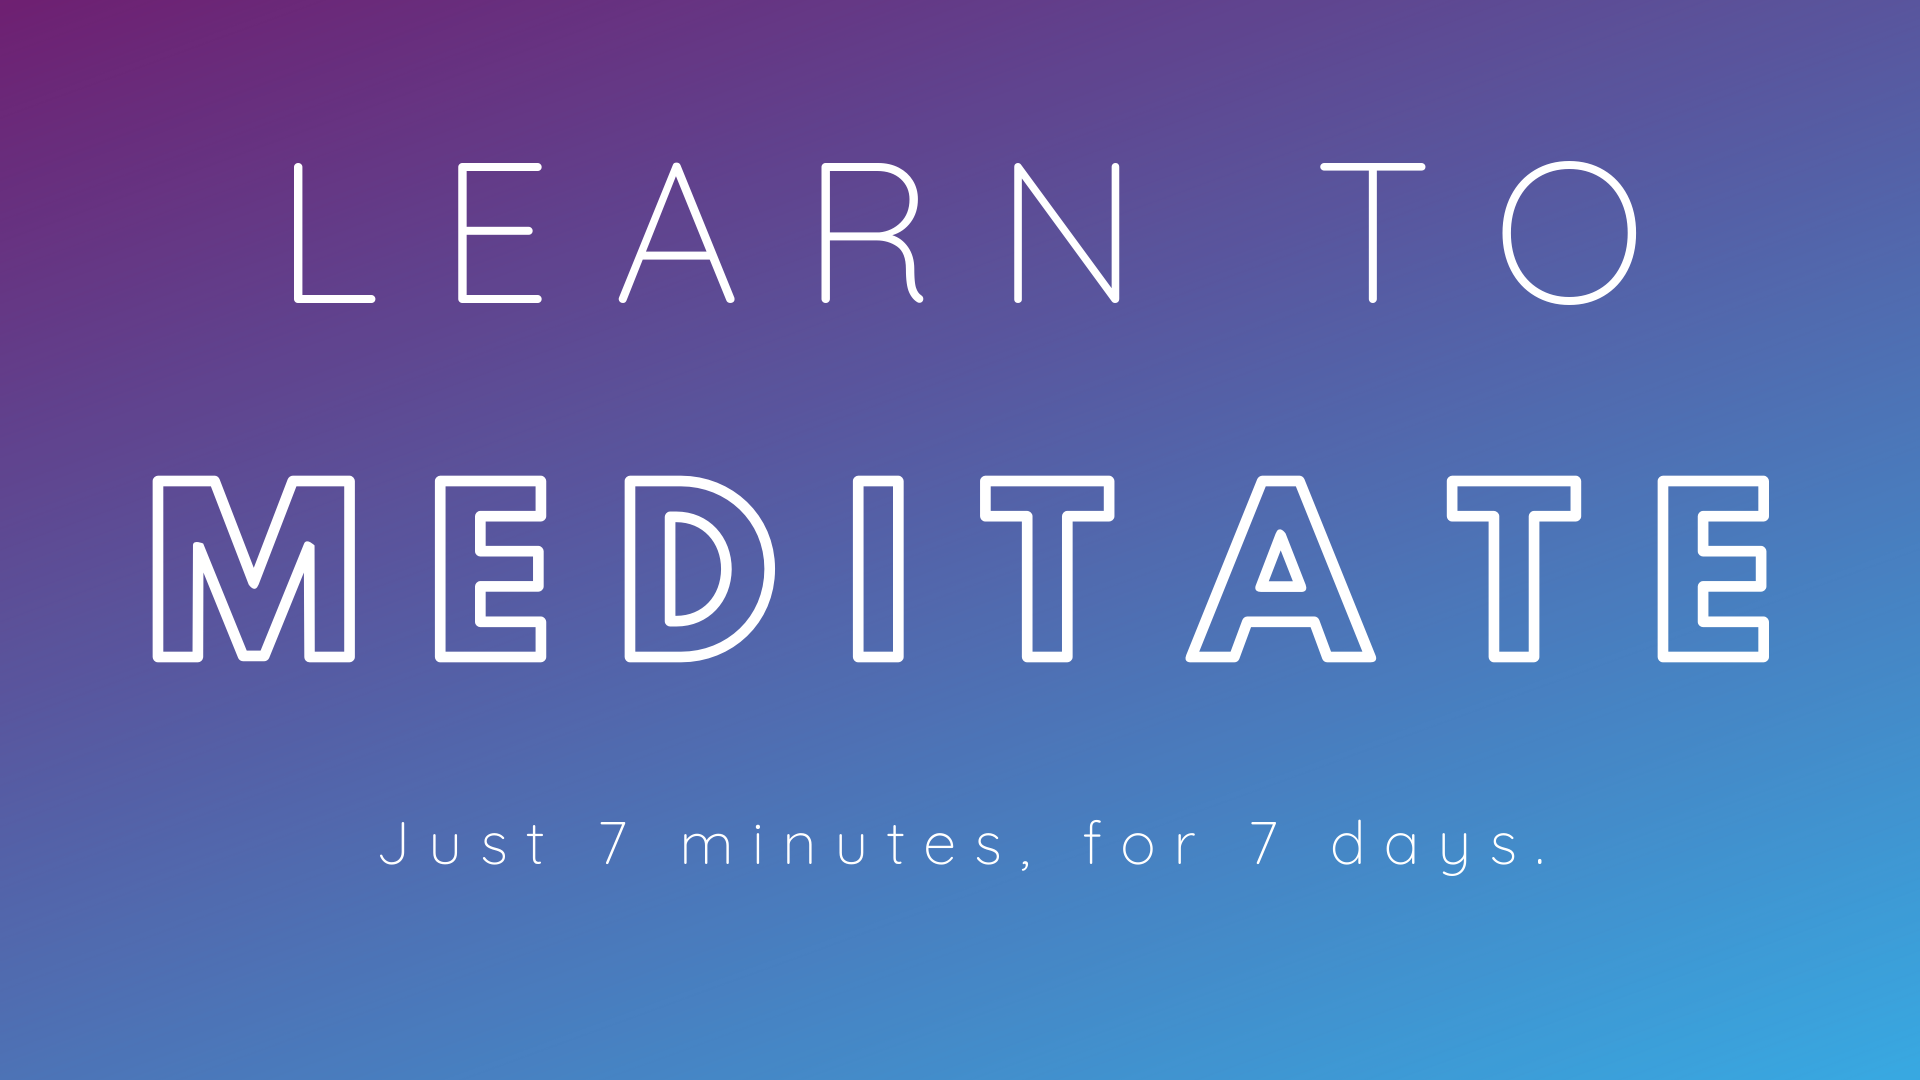 Learn to Meditate_7 minutes 7 days